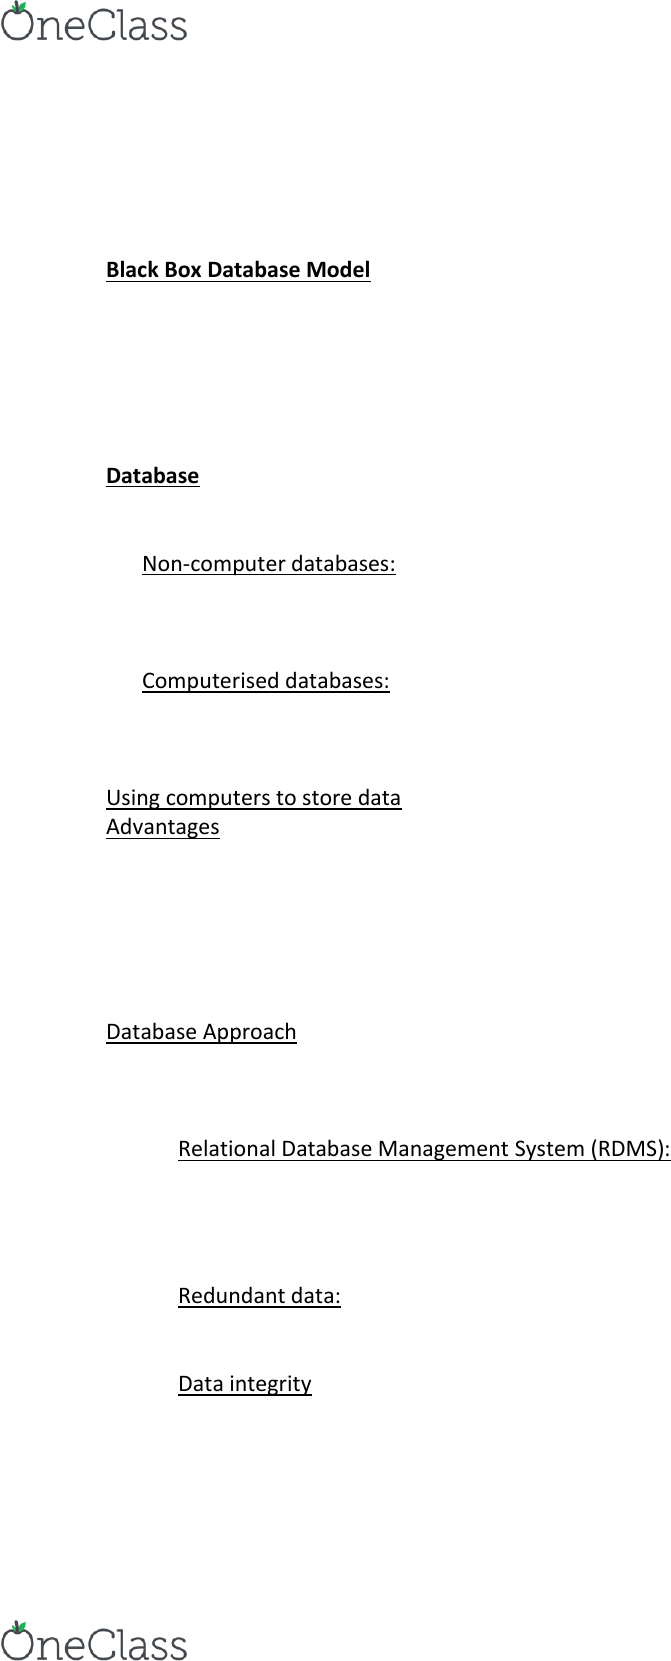 ISYS2056 Lecture Notes - Lecture 8: Relational Database Management System,  Telephone Directory, Database Model